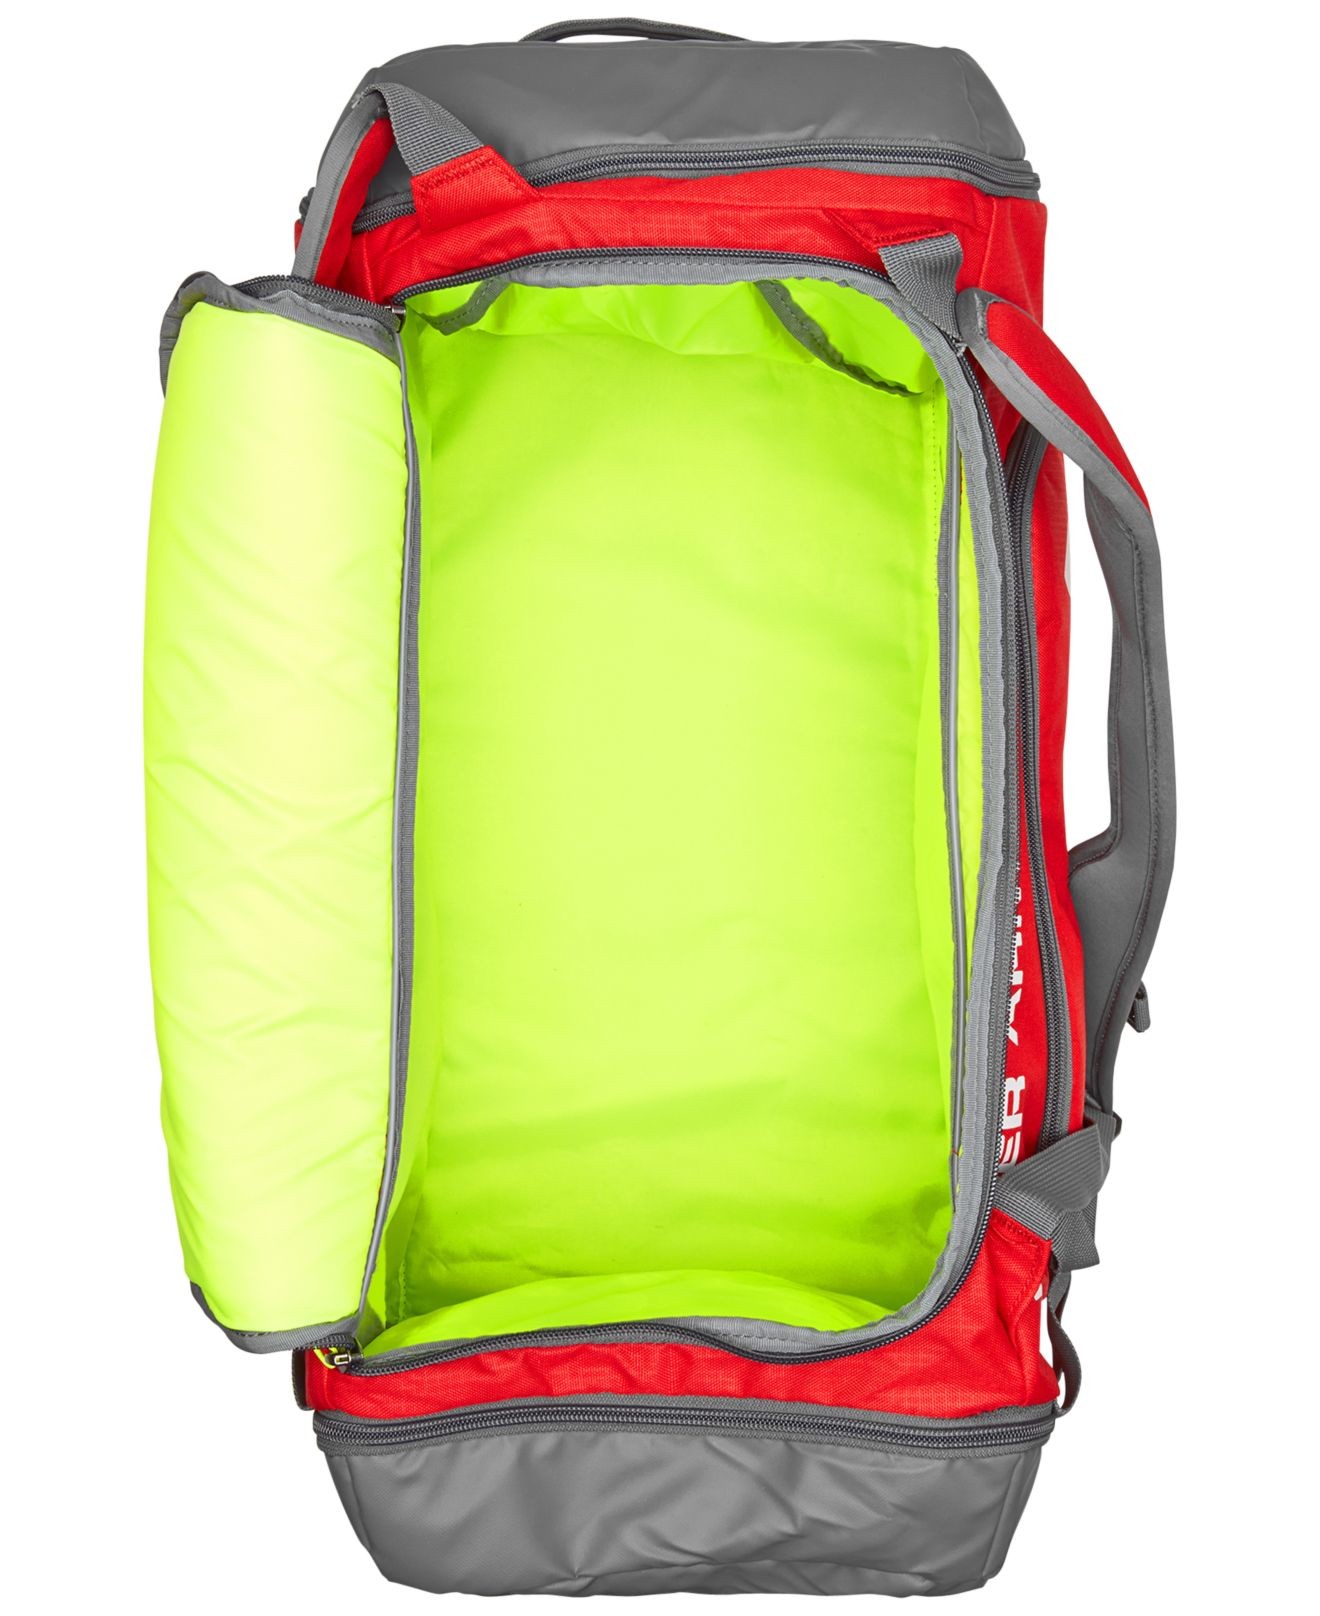 Lyst - Under Armour Contain Duffel Backpack in Red for Men